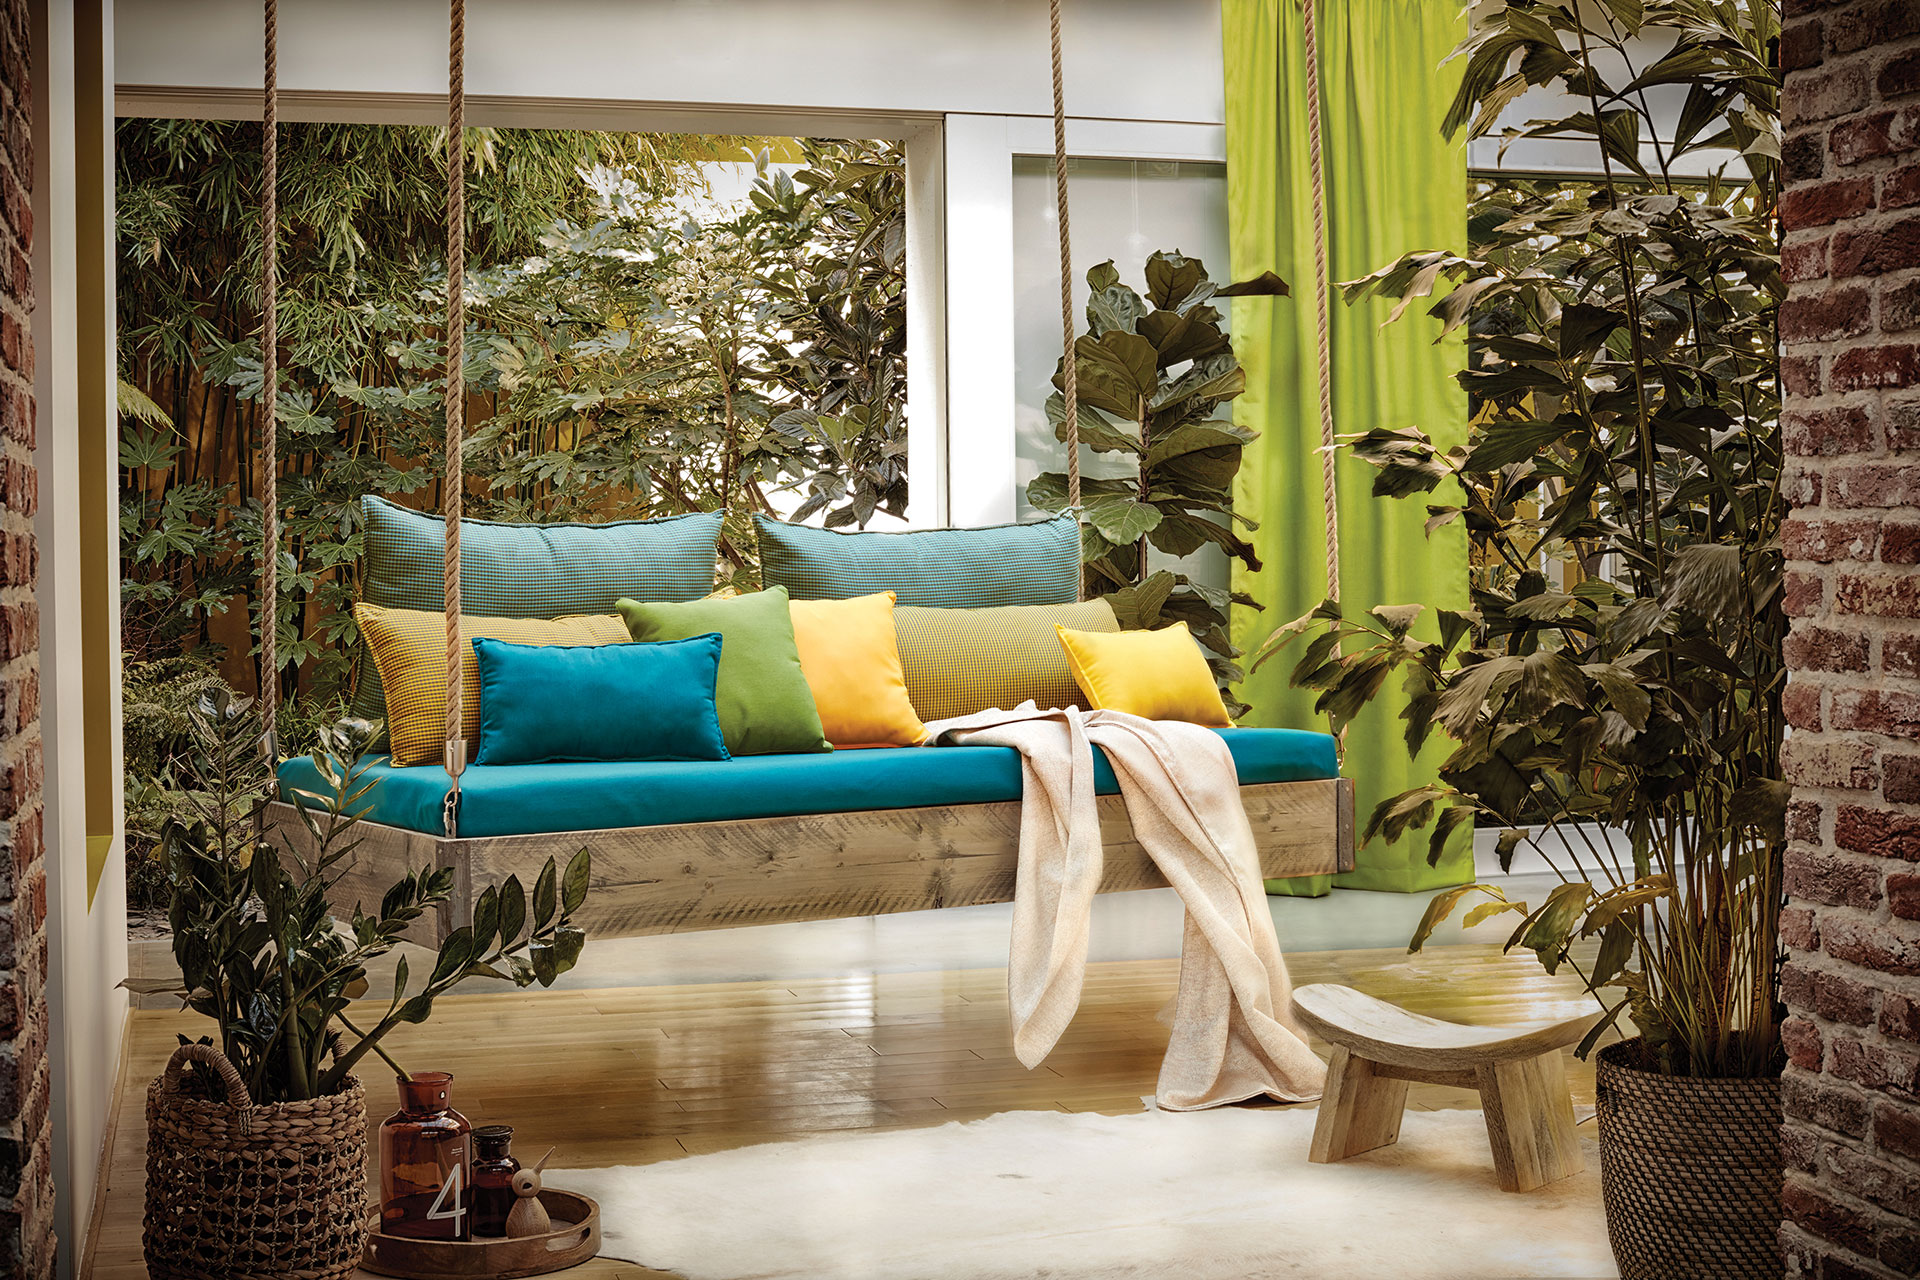 A swing with teal cushions in accented with bright pillows in yellow, green, and teal pillows with green drapery in the background.